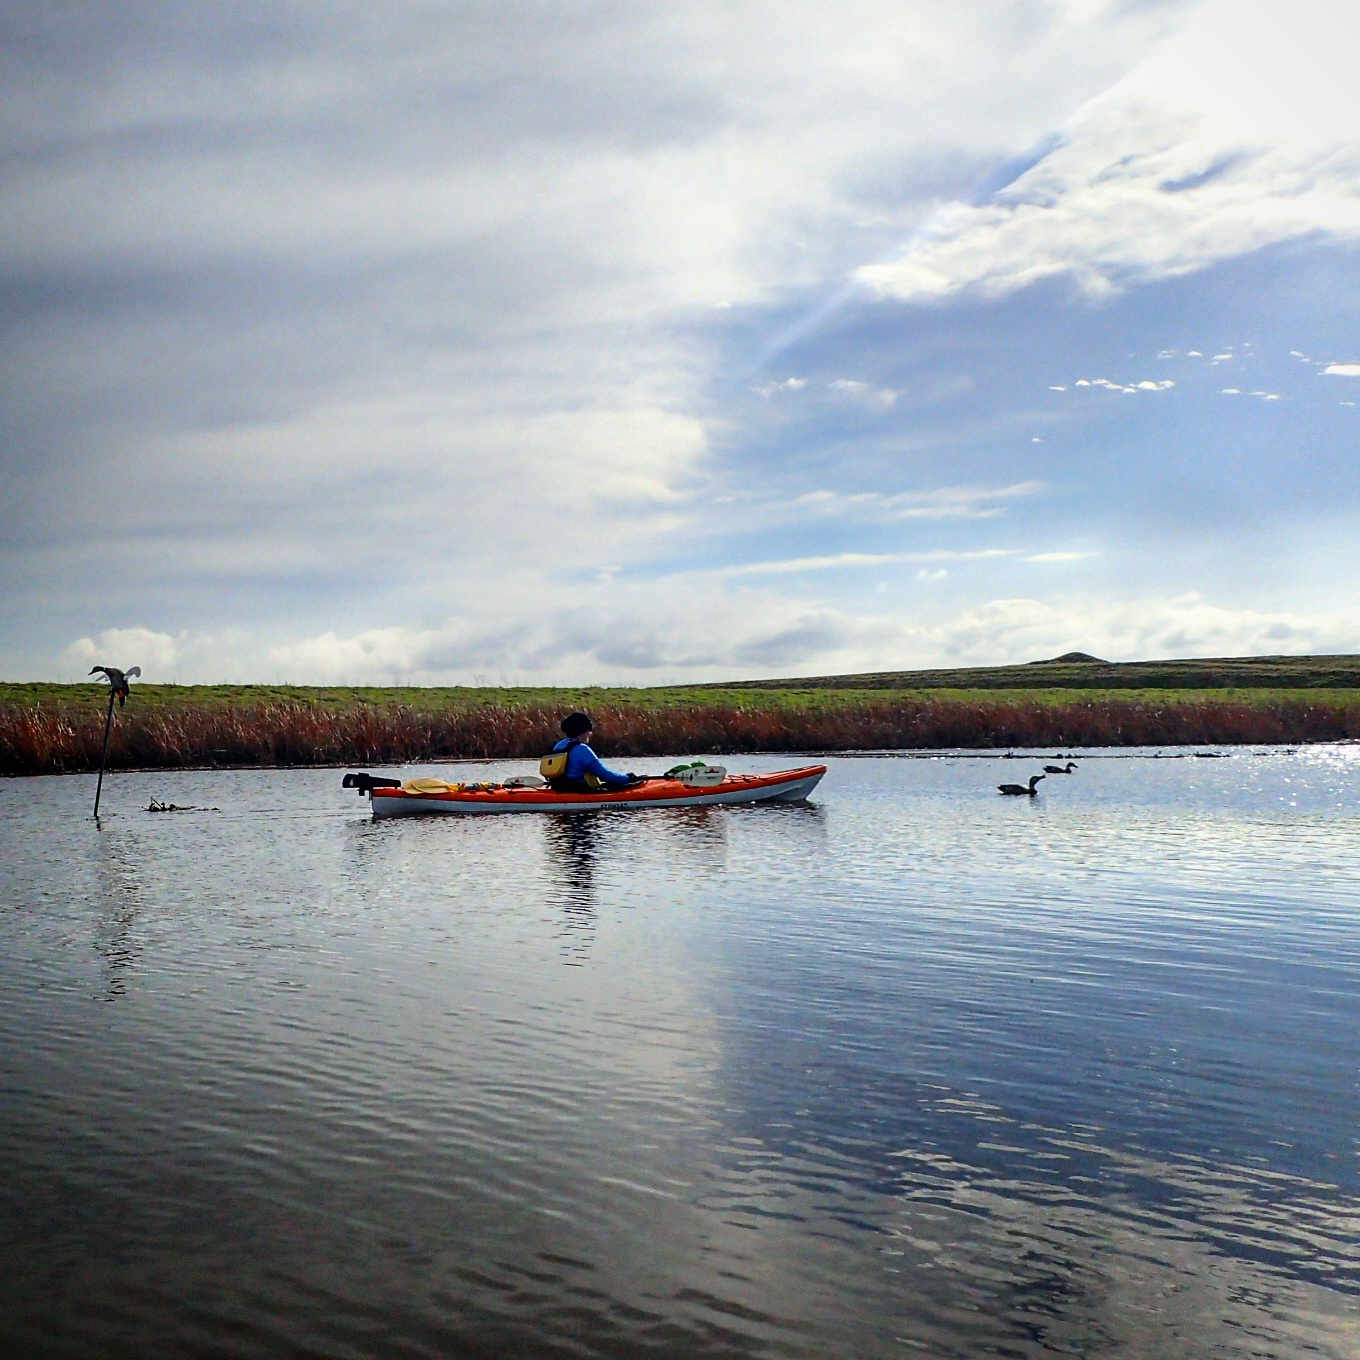 Kayaking the california delta old river to mountain house creek the sun broke through the clouds and bathed us in its 55 degree warmth we launched from rivers end marina at 1215 and paddled south on old publicscrutiny Image collections